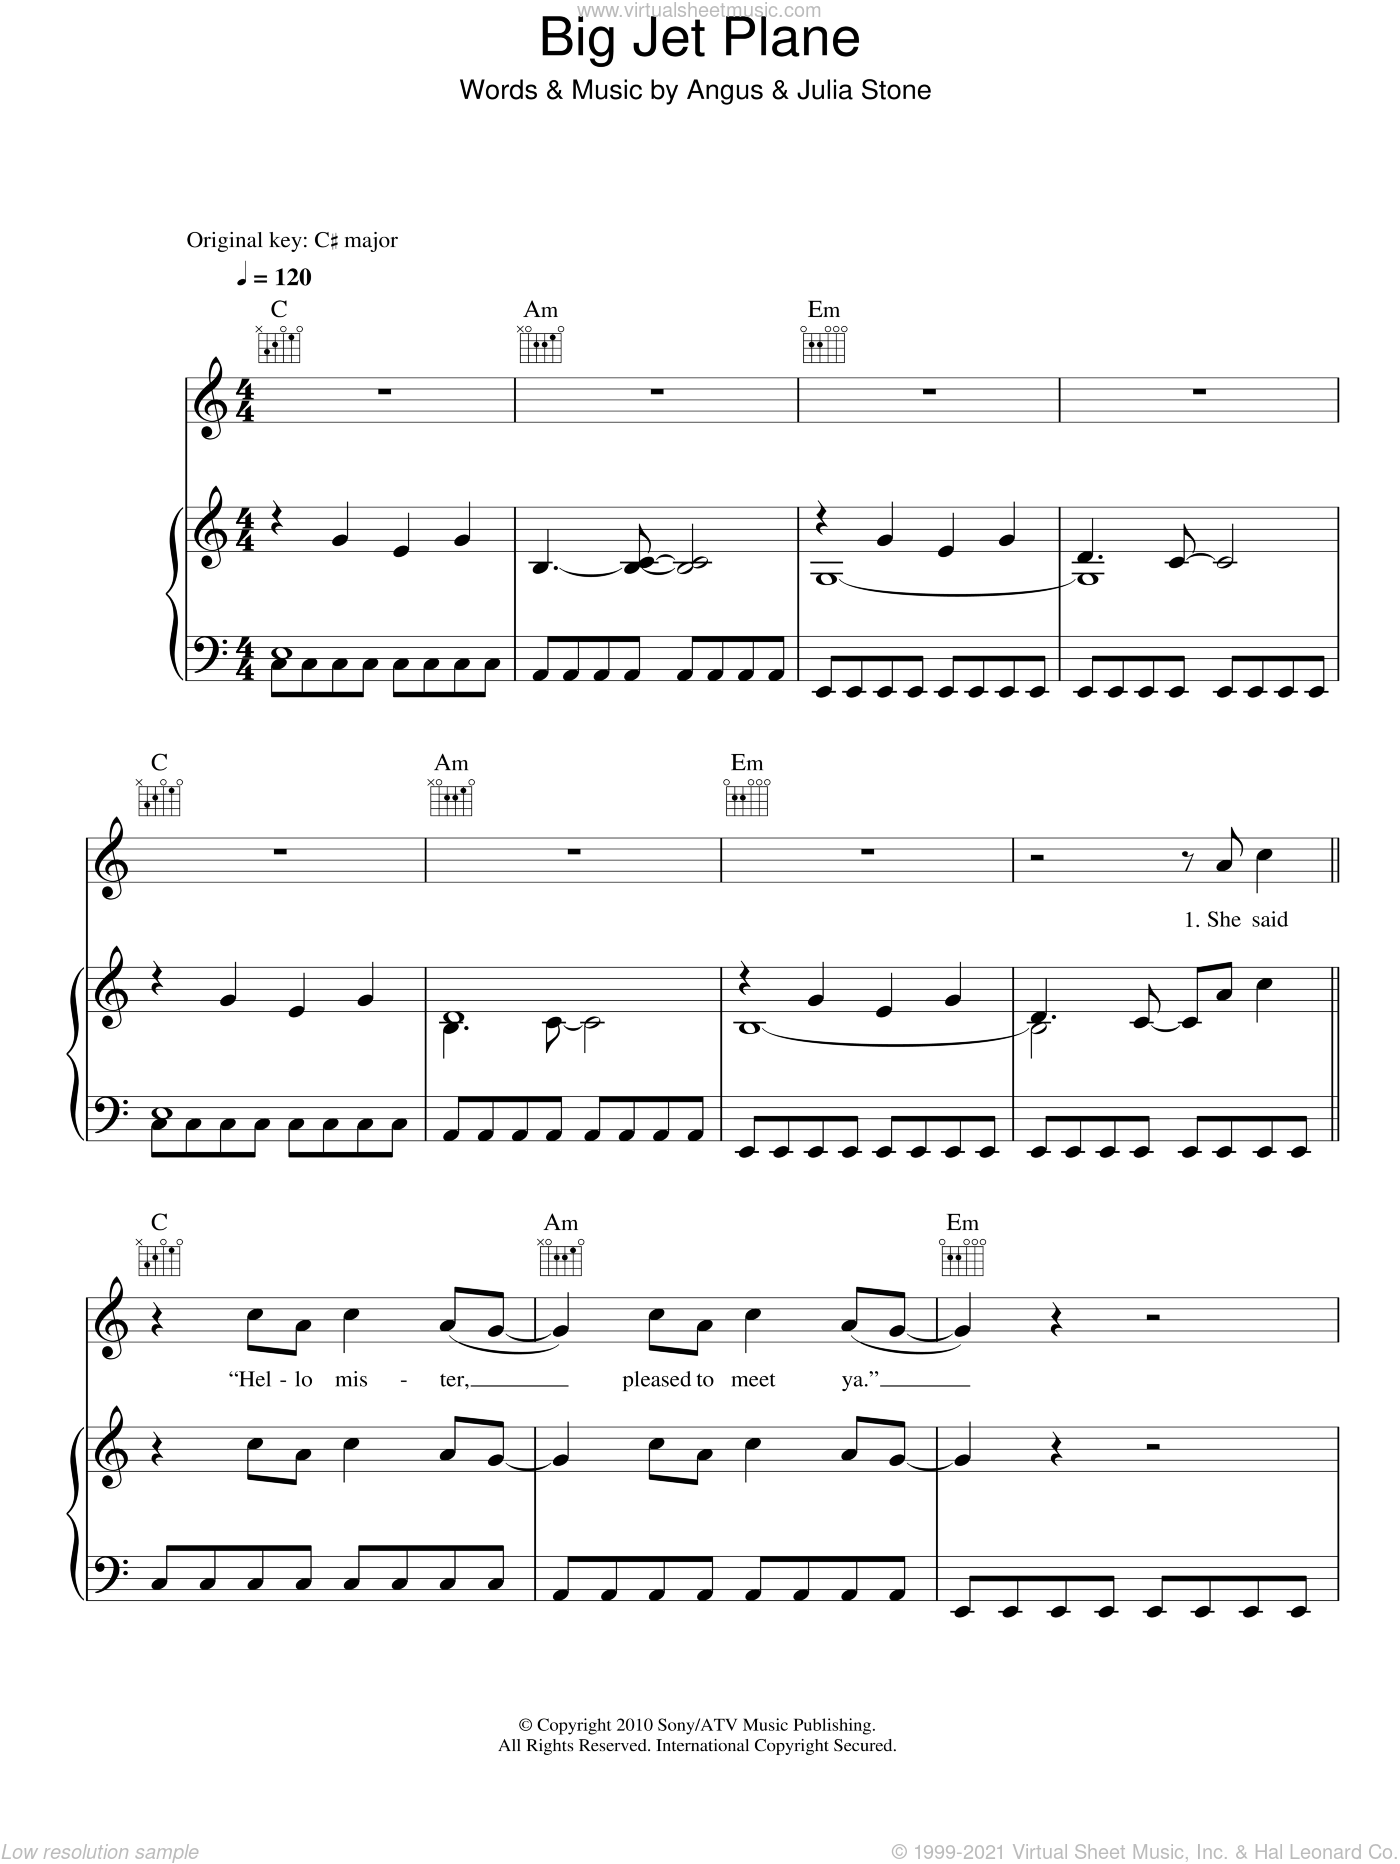 Big Jet Plane sheet music for voice, piano or guitar by Julia Stone and Angus Stone, intermediate skill level